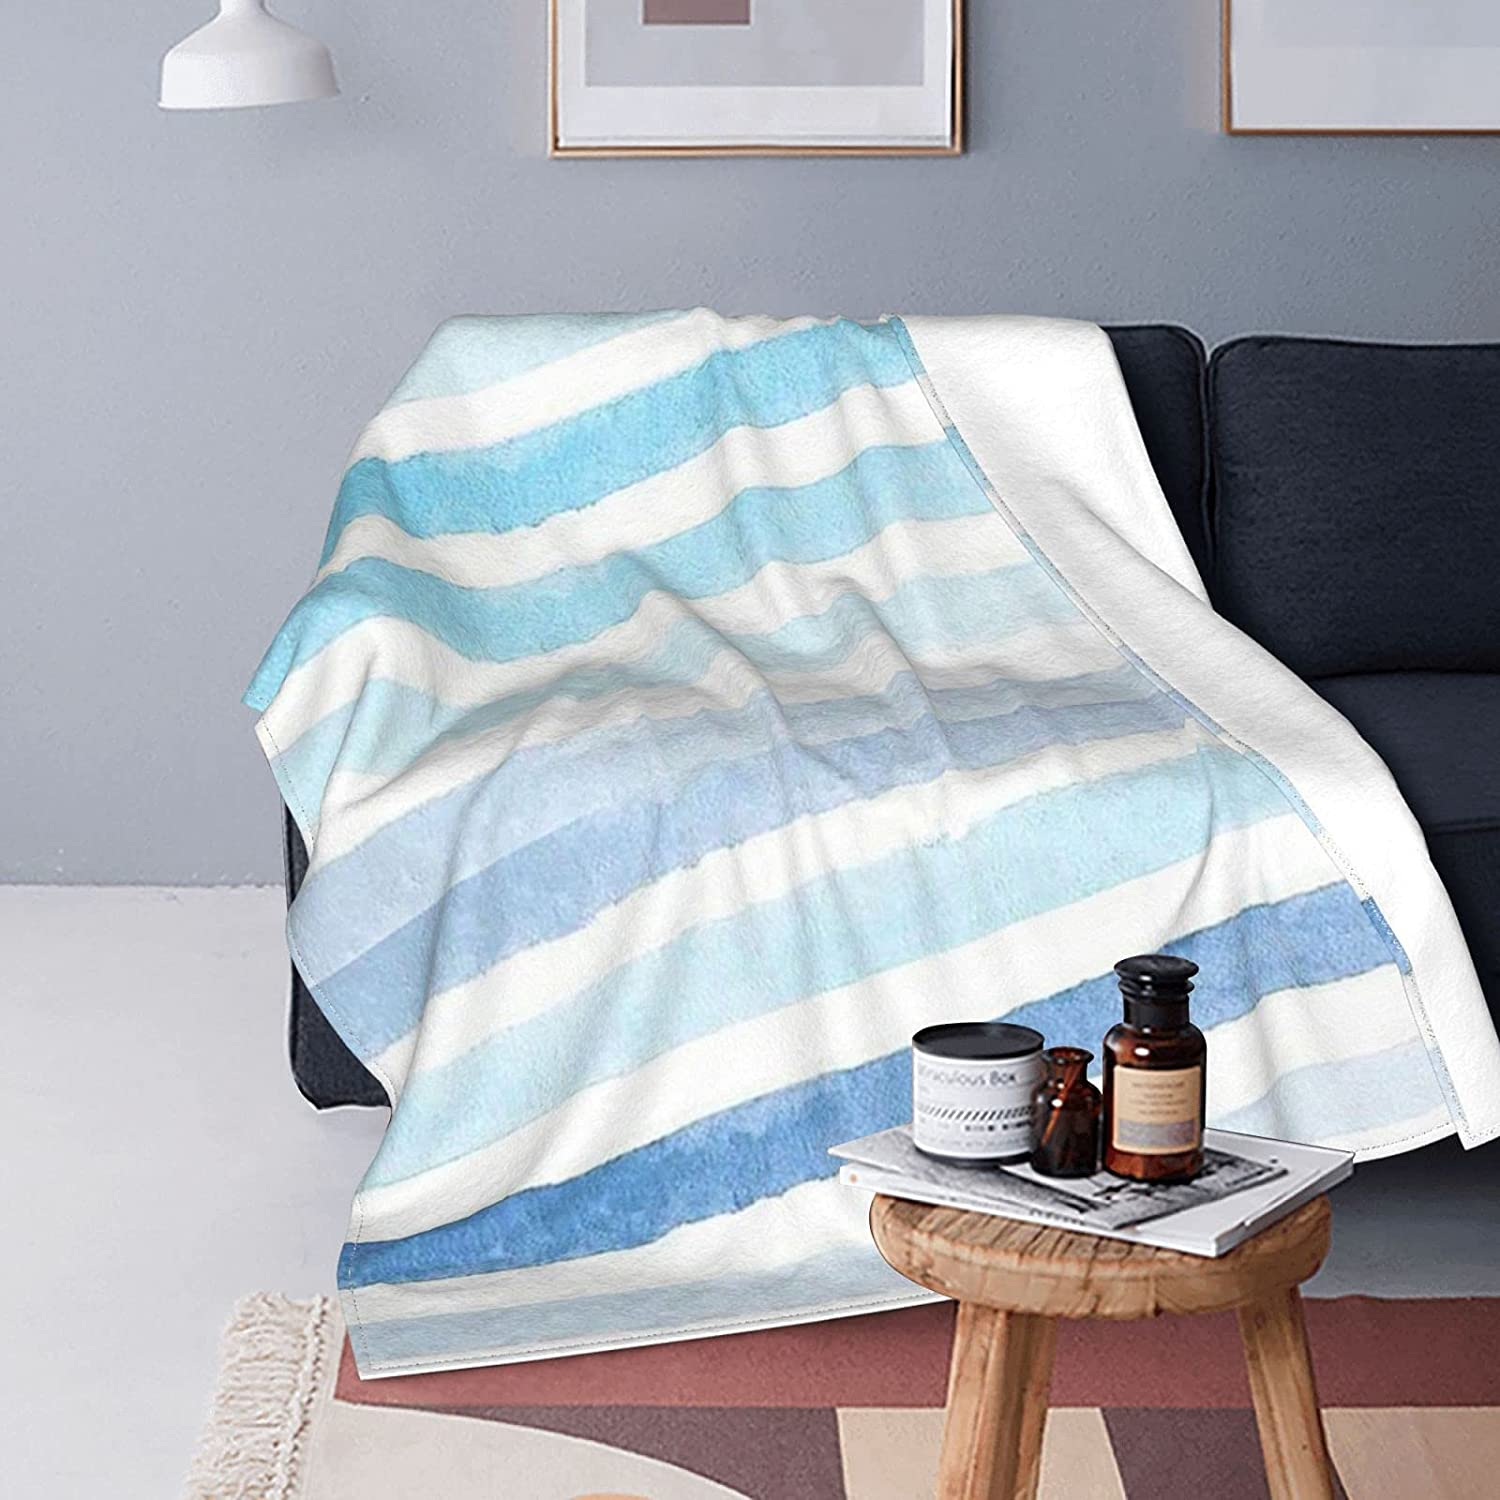 YAMADEI Super Soft Flannel Blanket Comfortable Blue Stripes Sale Special Price 5% OFF and